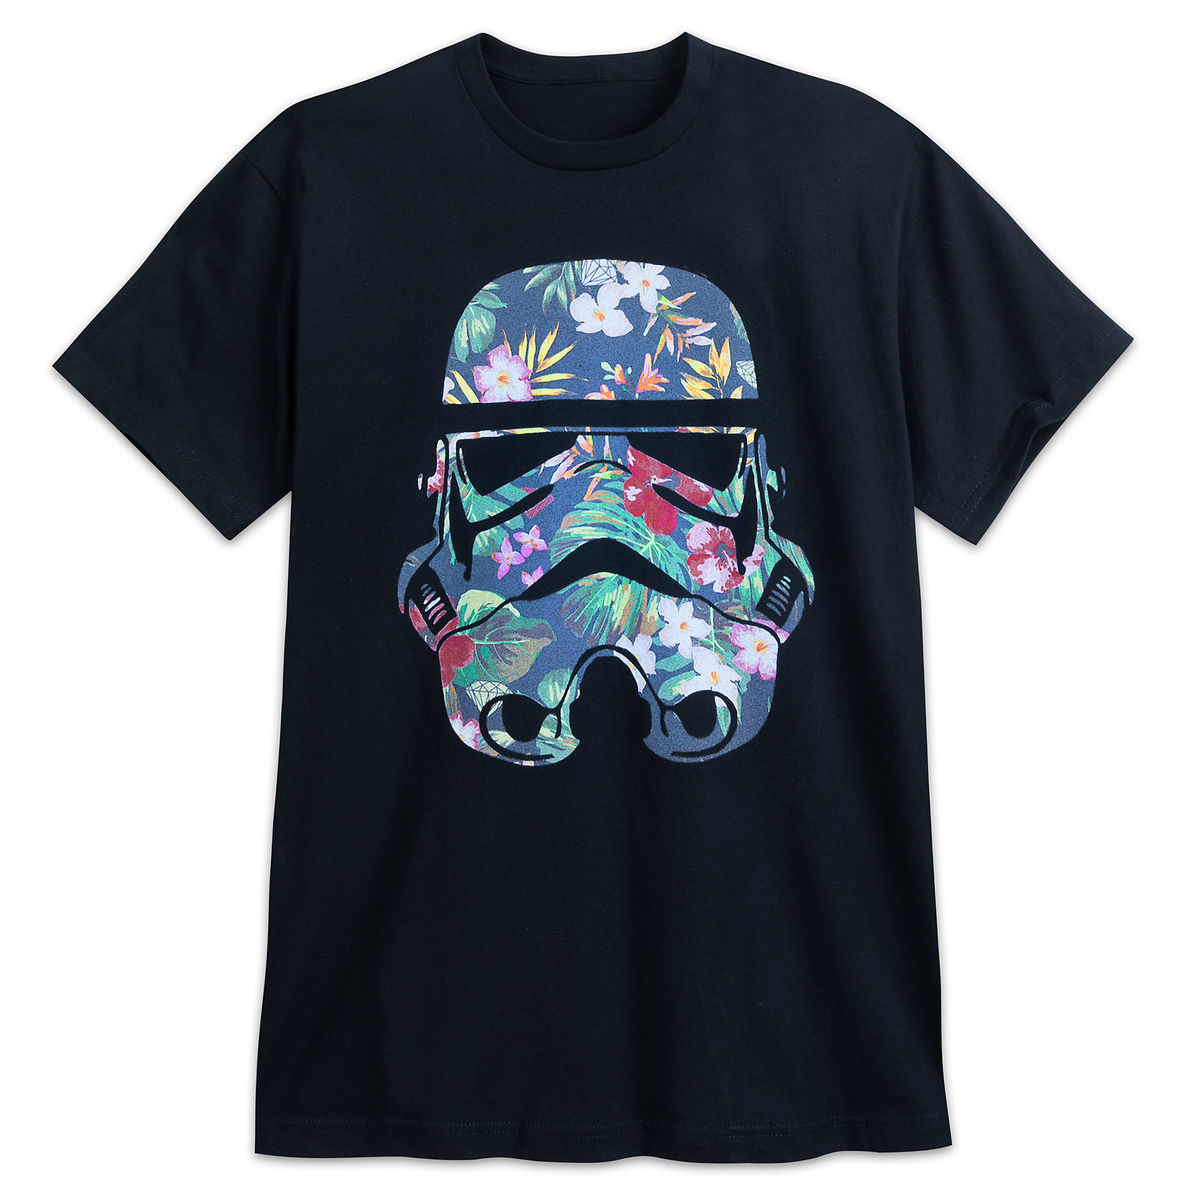 Product Image of Stormtrooper Floral T-Shirt for Men - Star Wars   1 086cf99ae